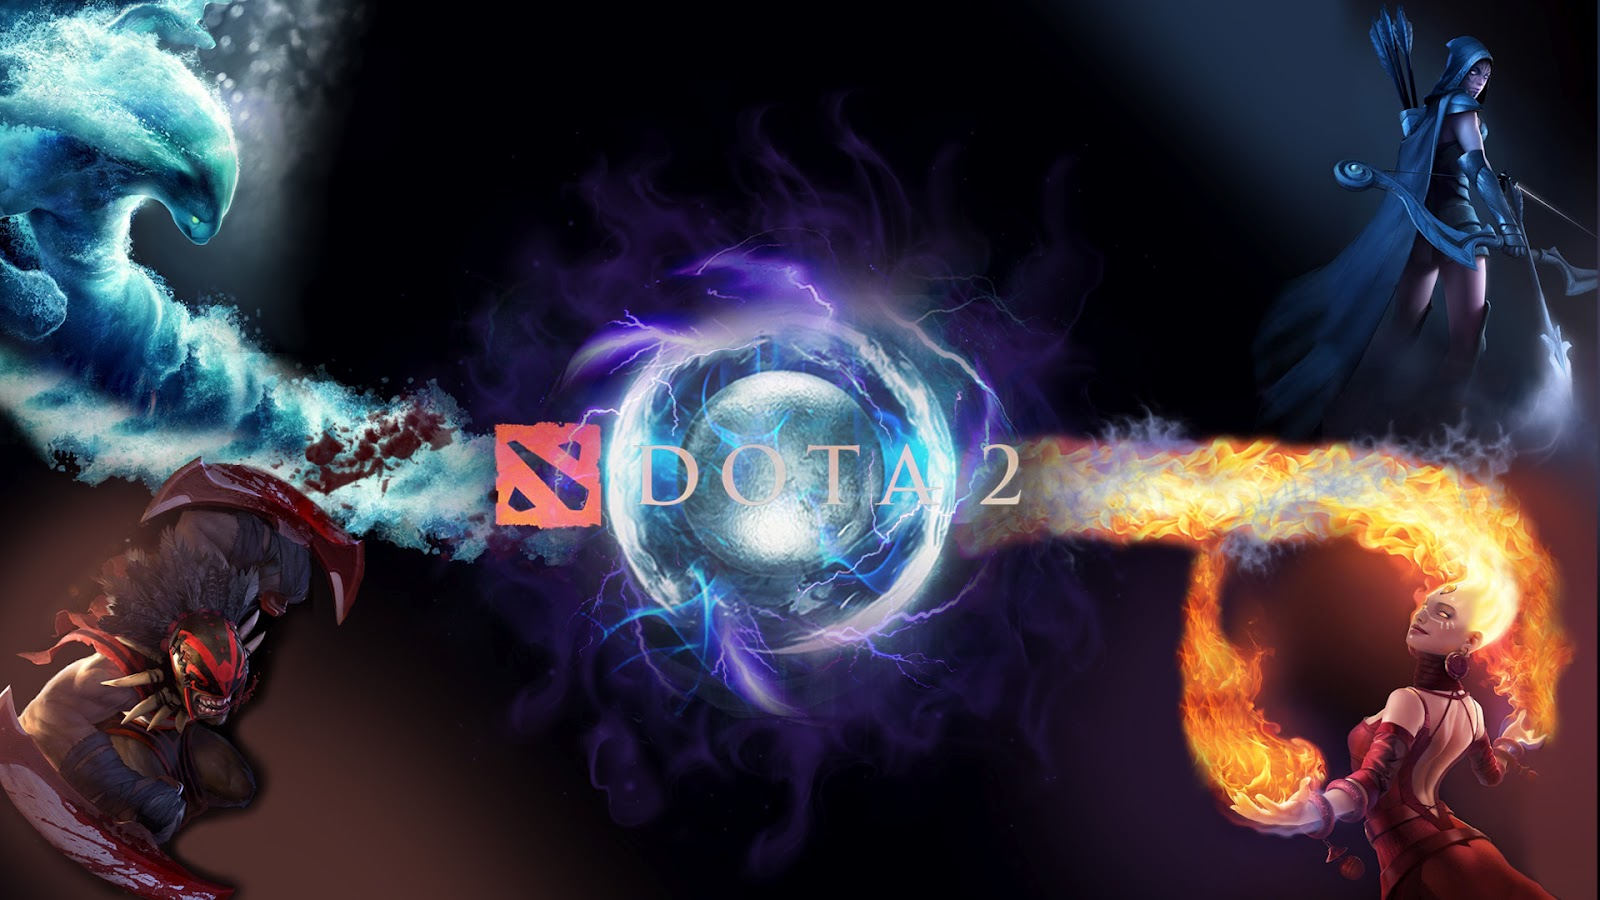 dota 2 wallpaper wallpaper wide hd